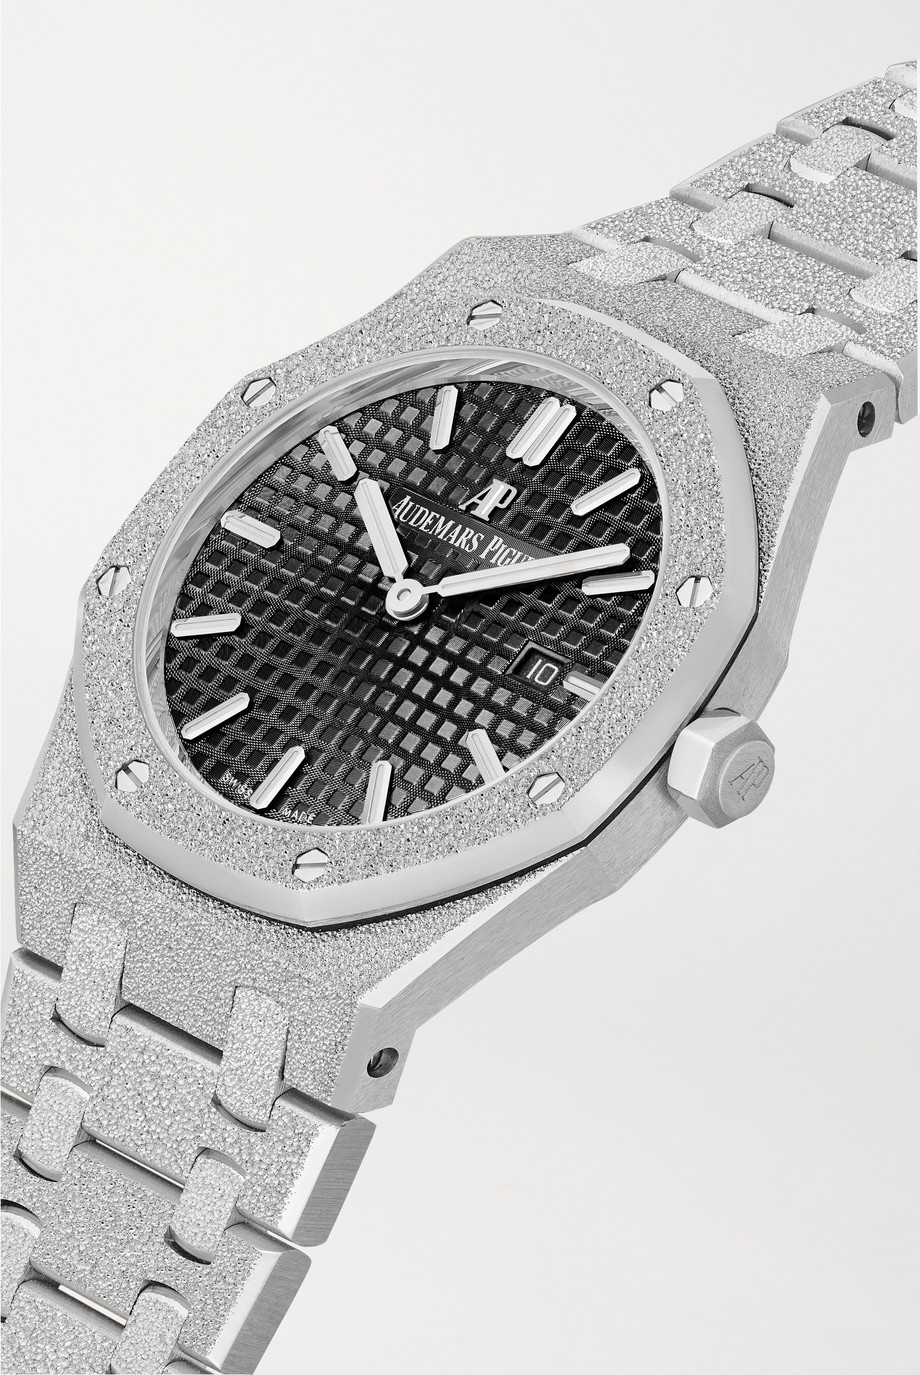 Audemars Piguet Royal Oak 33 毫米 18K 白金霜金腕表